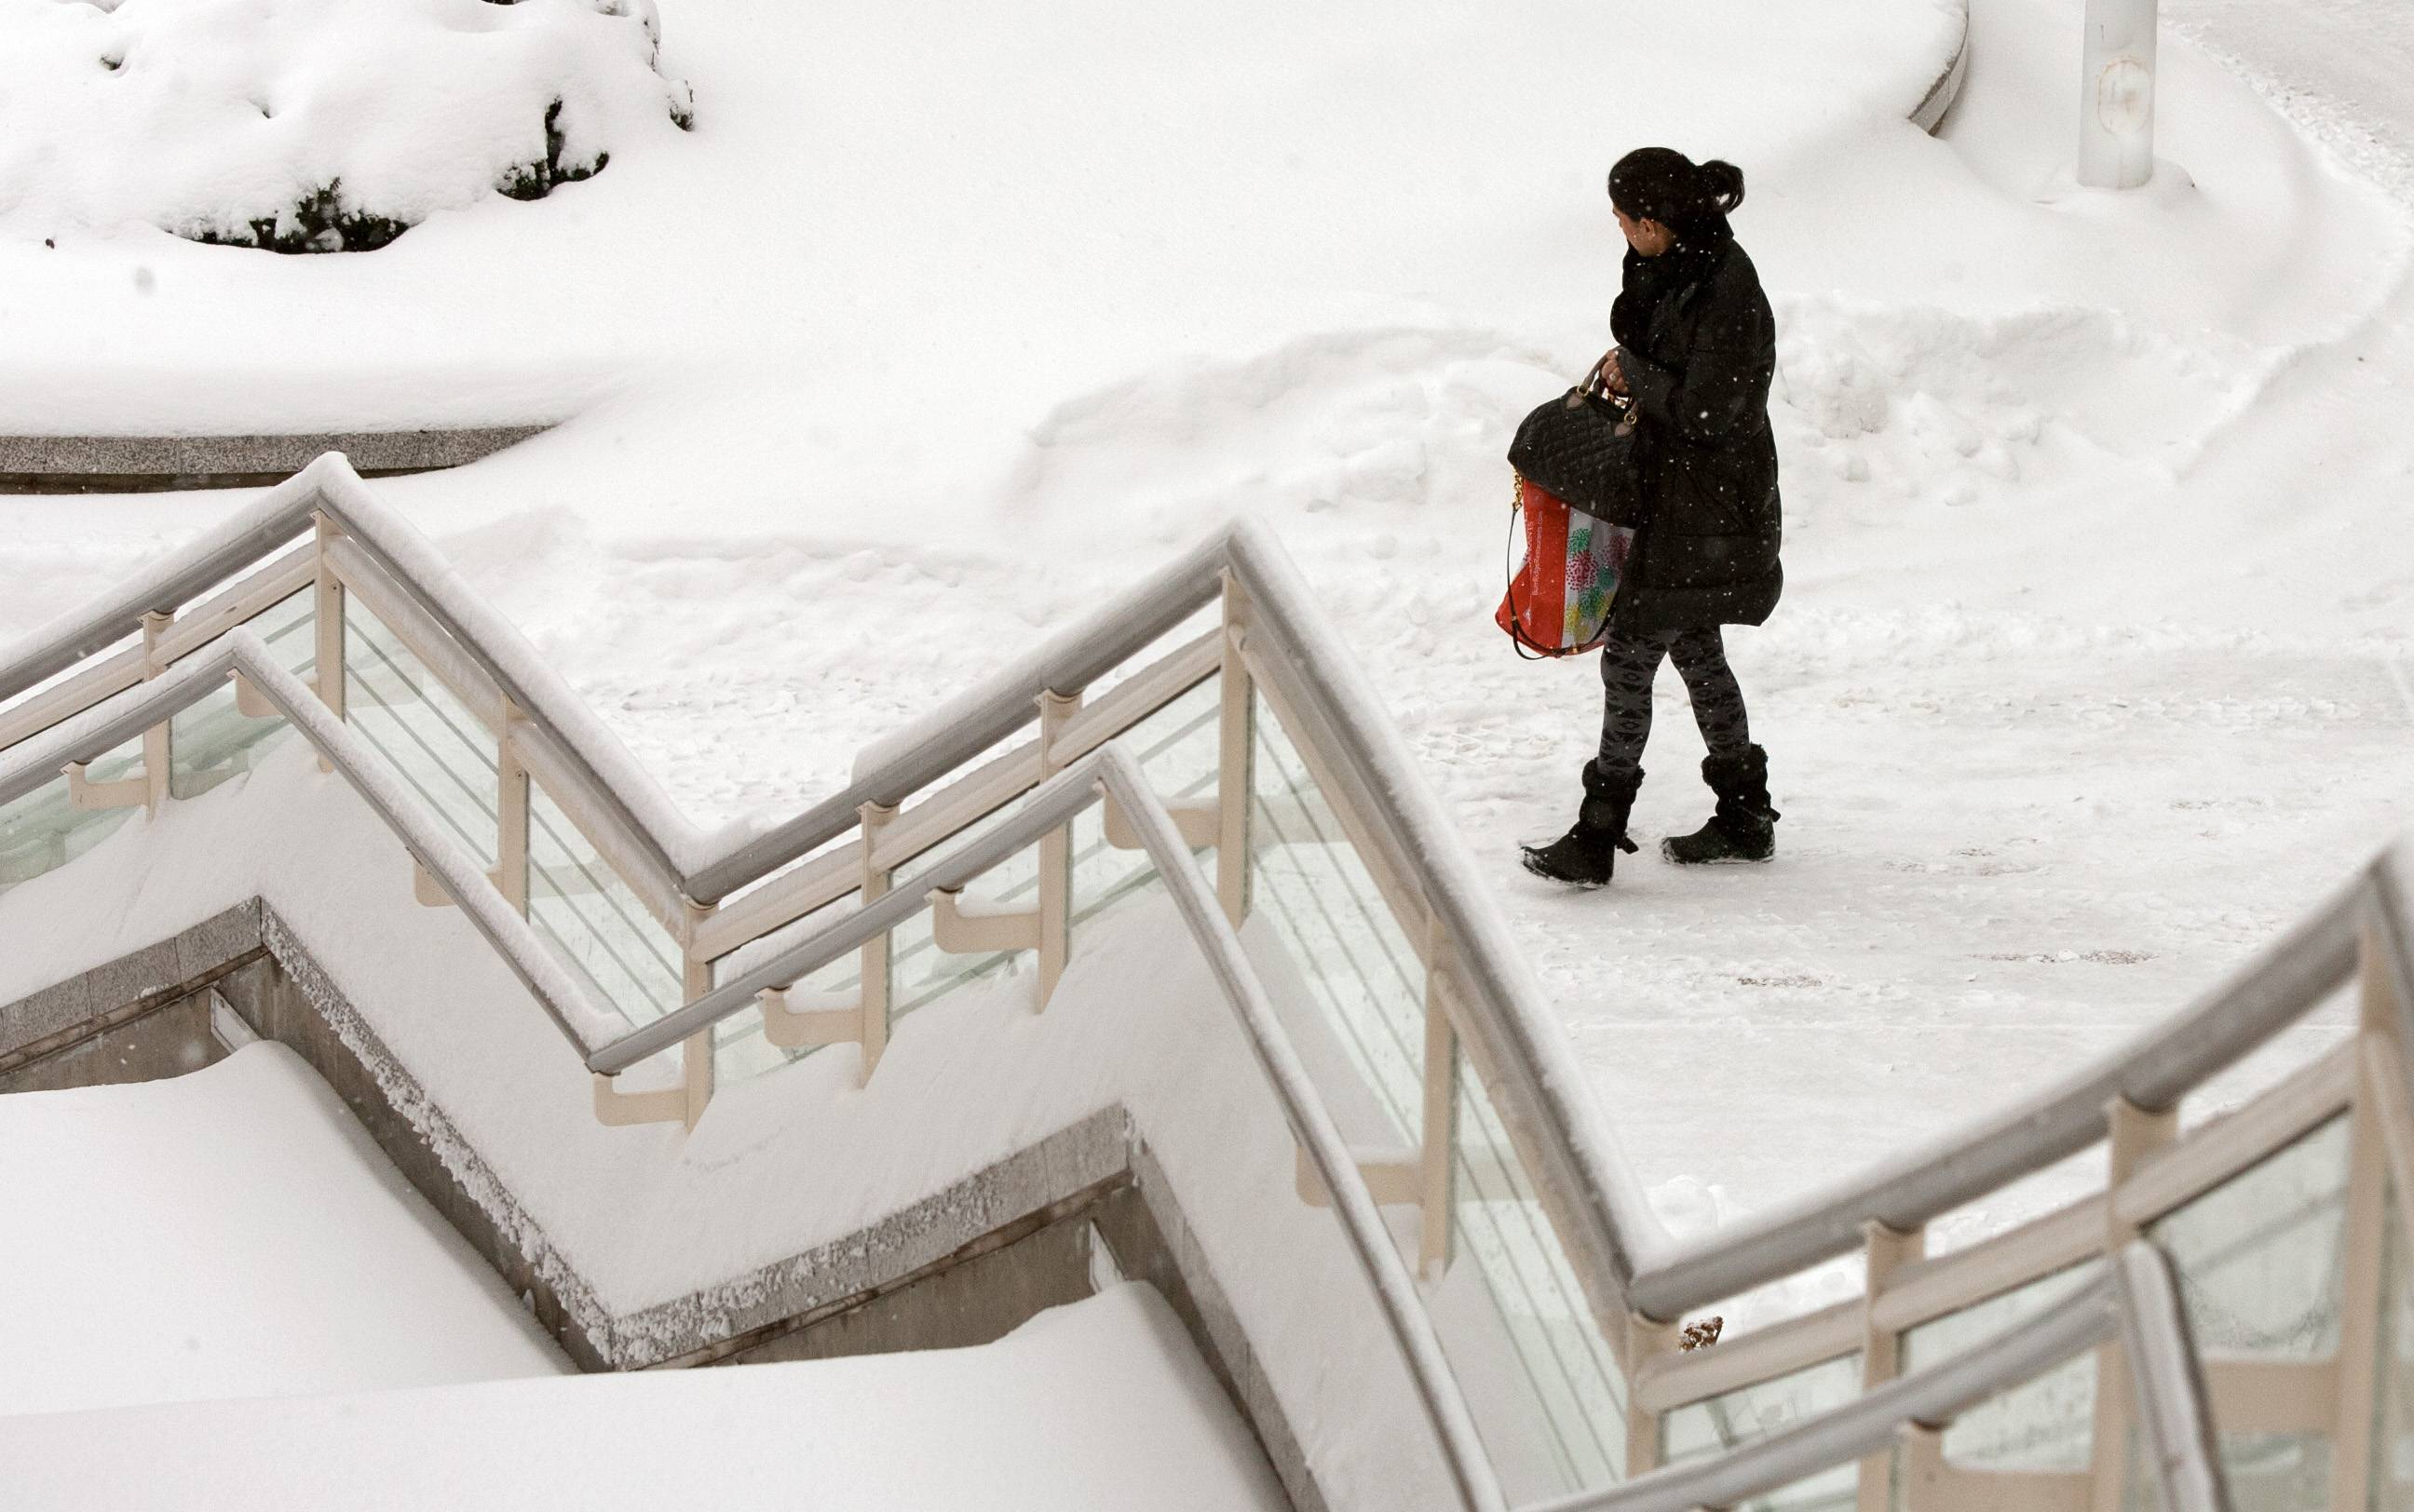 As snow continues to fall, only a handful of shoppers patronized the Oak Brook Mall in Oak Brook, Ill. on Wednesday, Feb. 5, 2014.